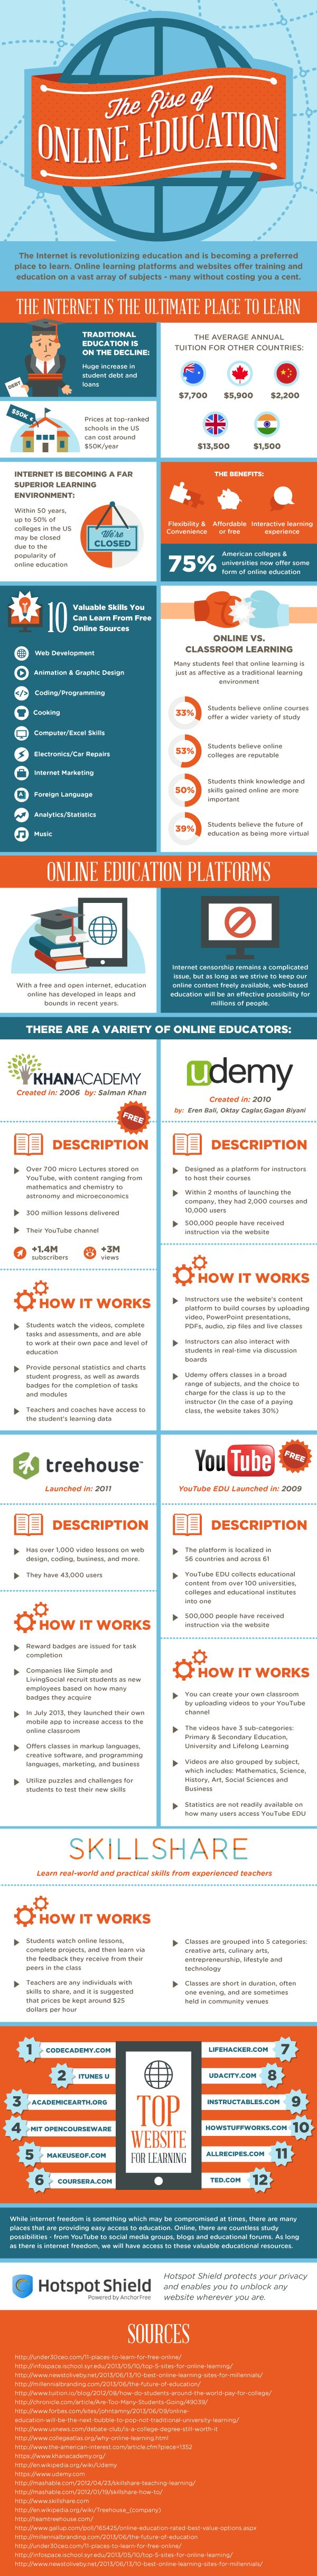 The infographic below highlights the benefits of online education and features popular sites and platforms that offer high quality training and information.